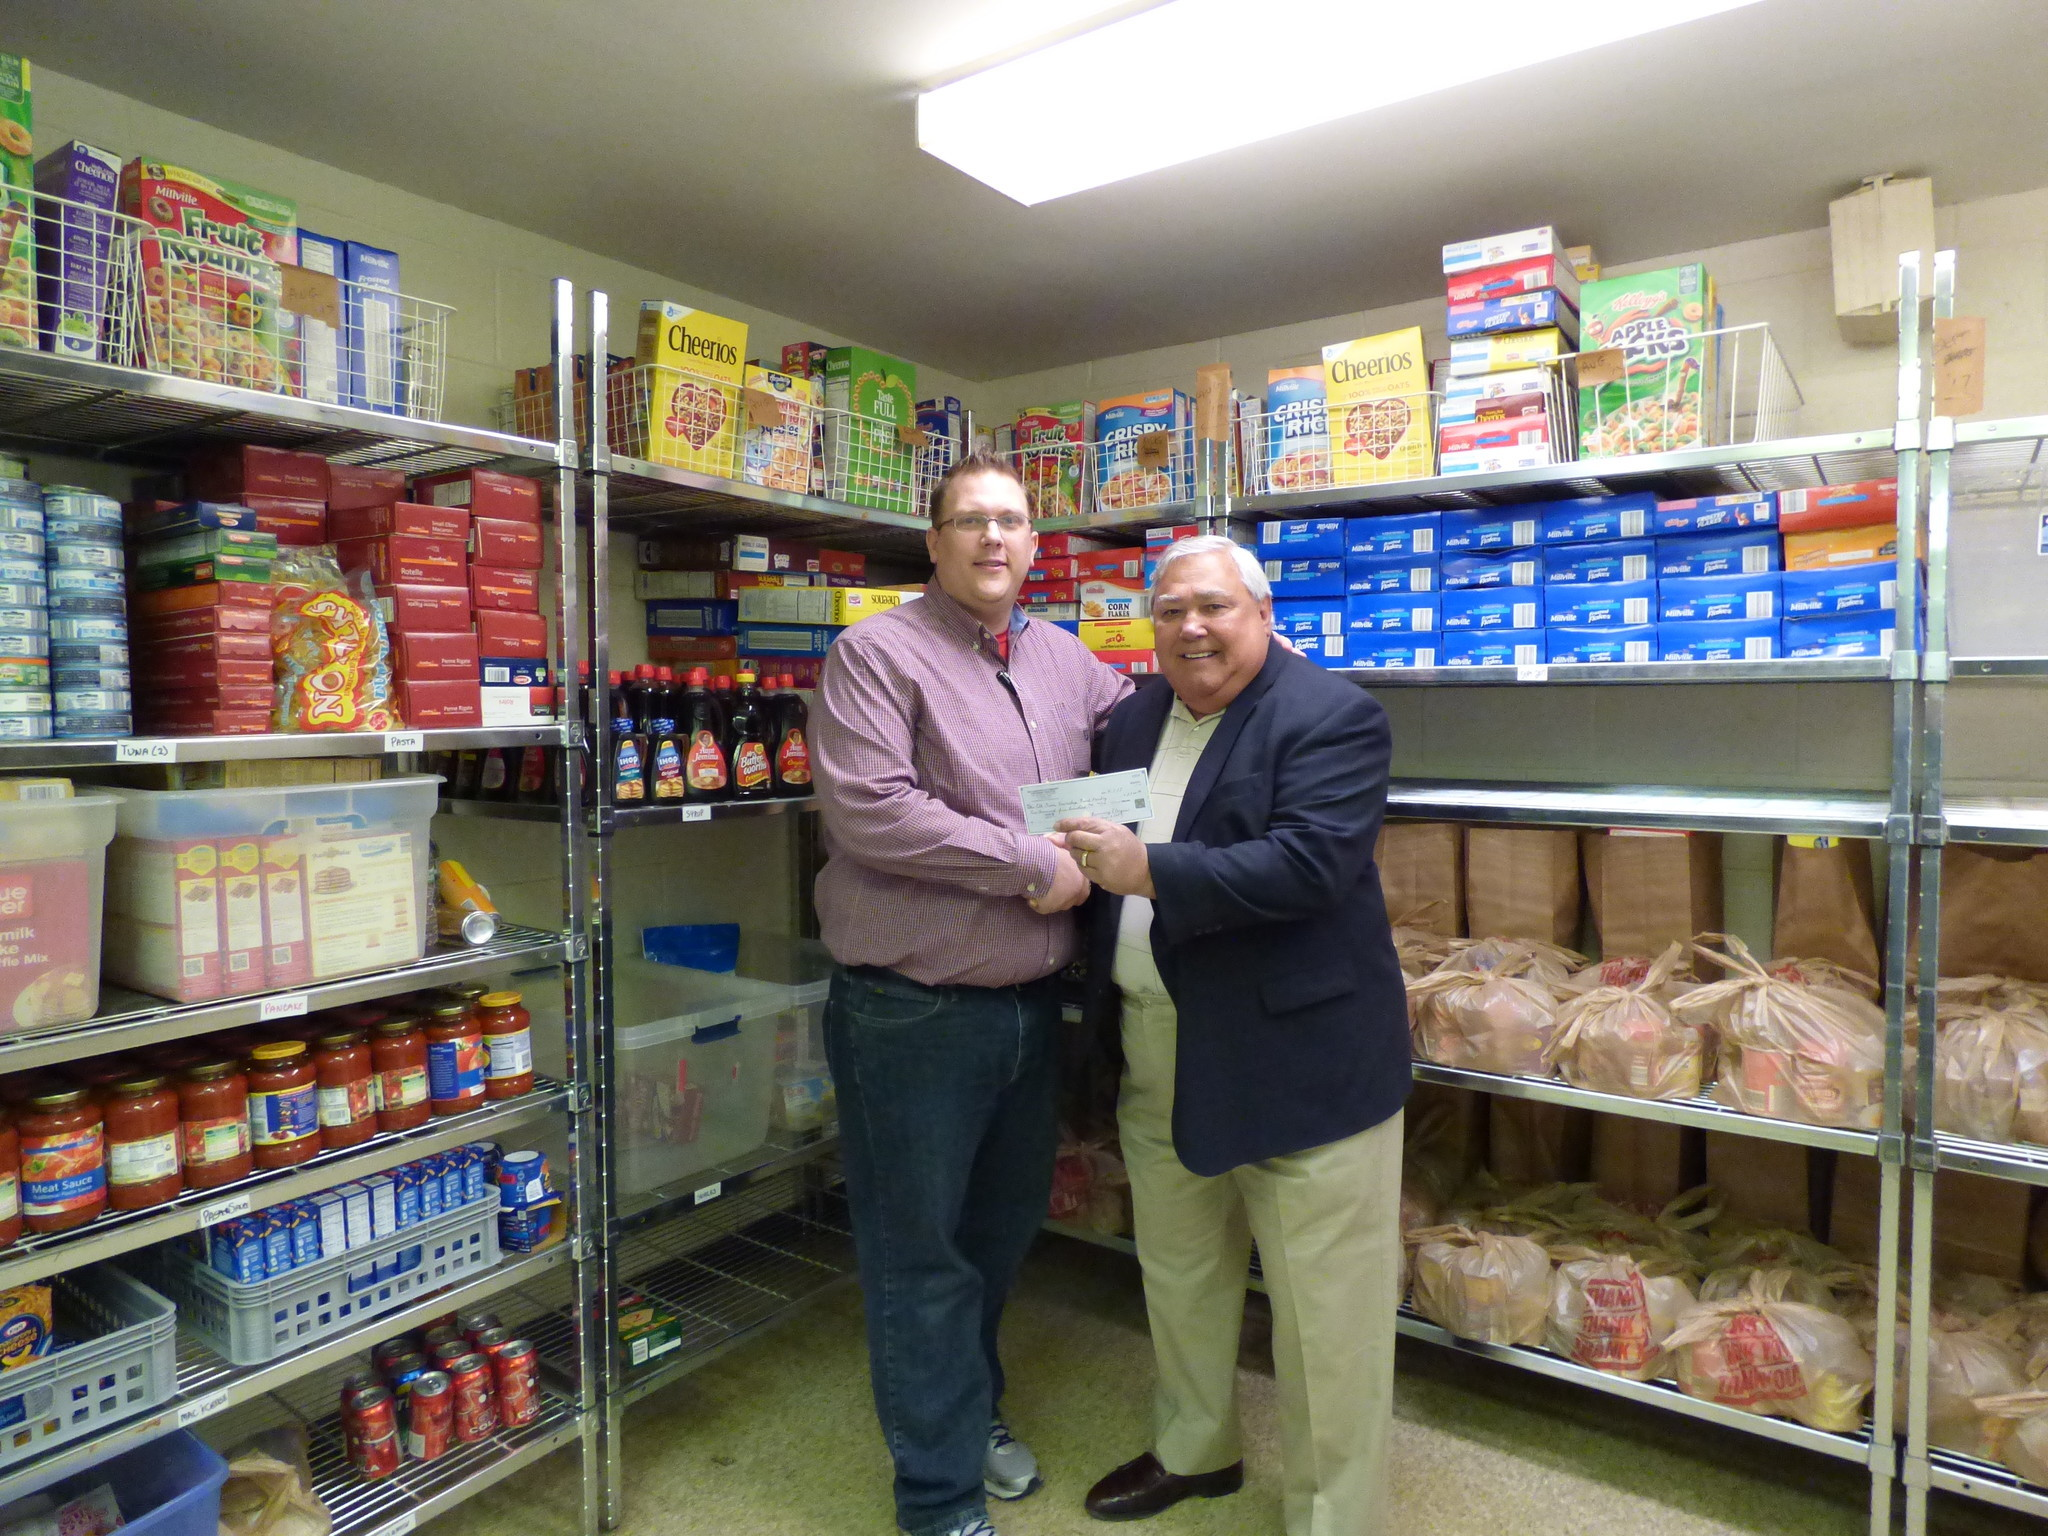 Food pantry in chicago heights for Food pantry in chicago heights